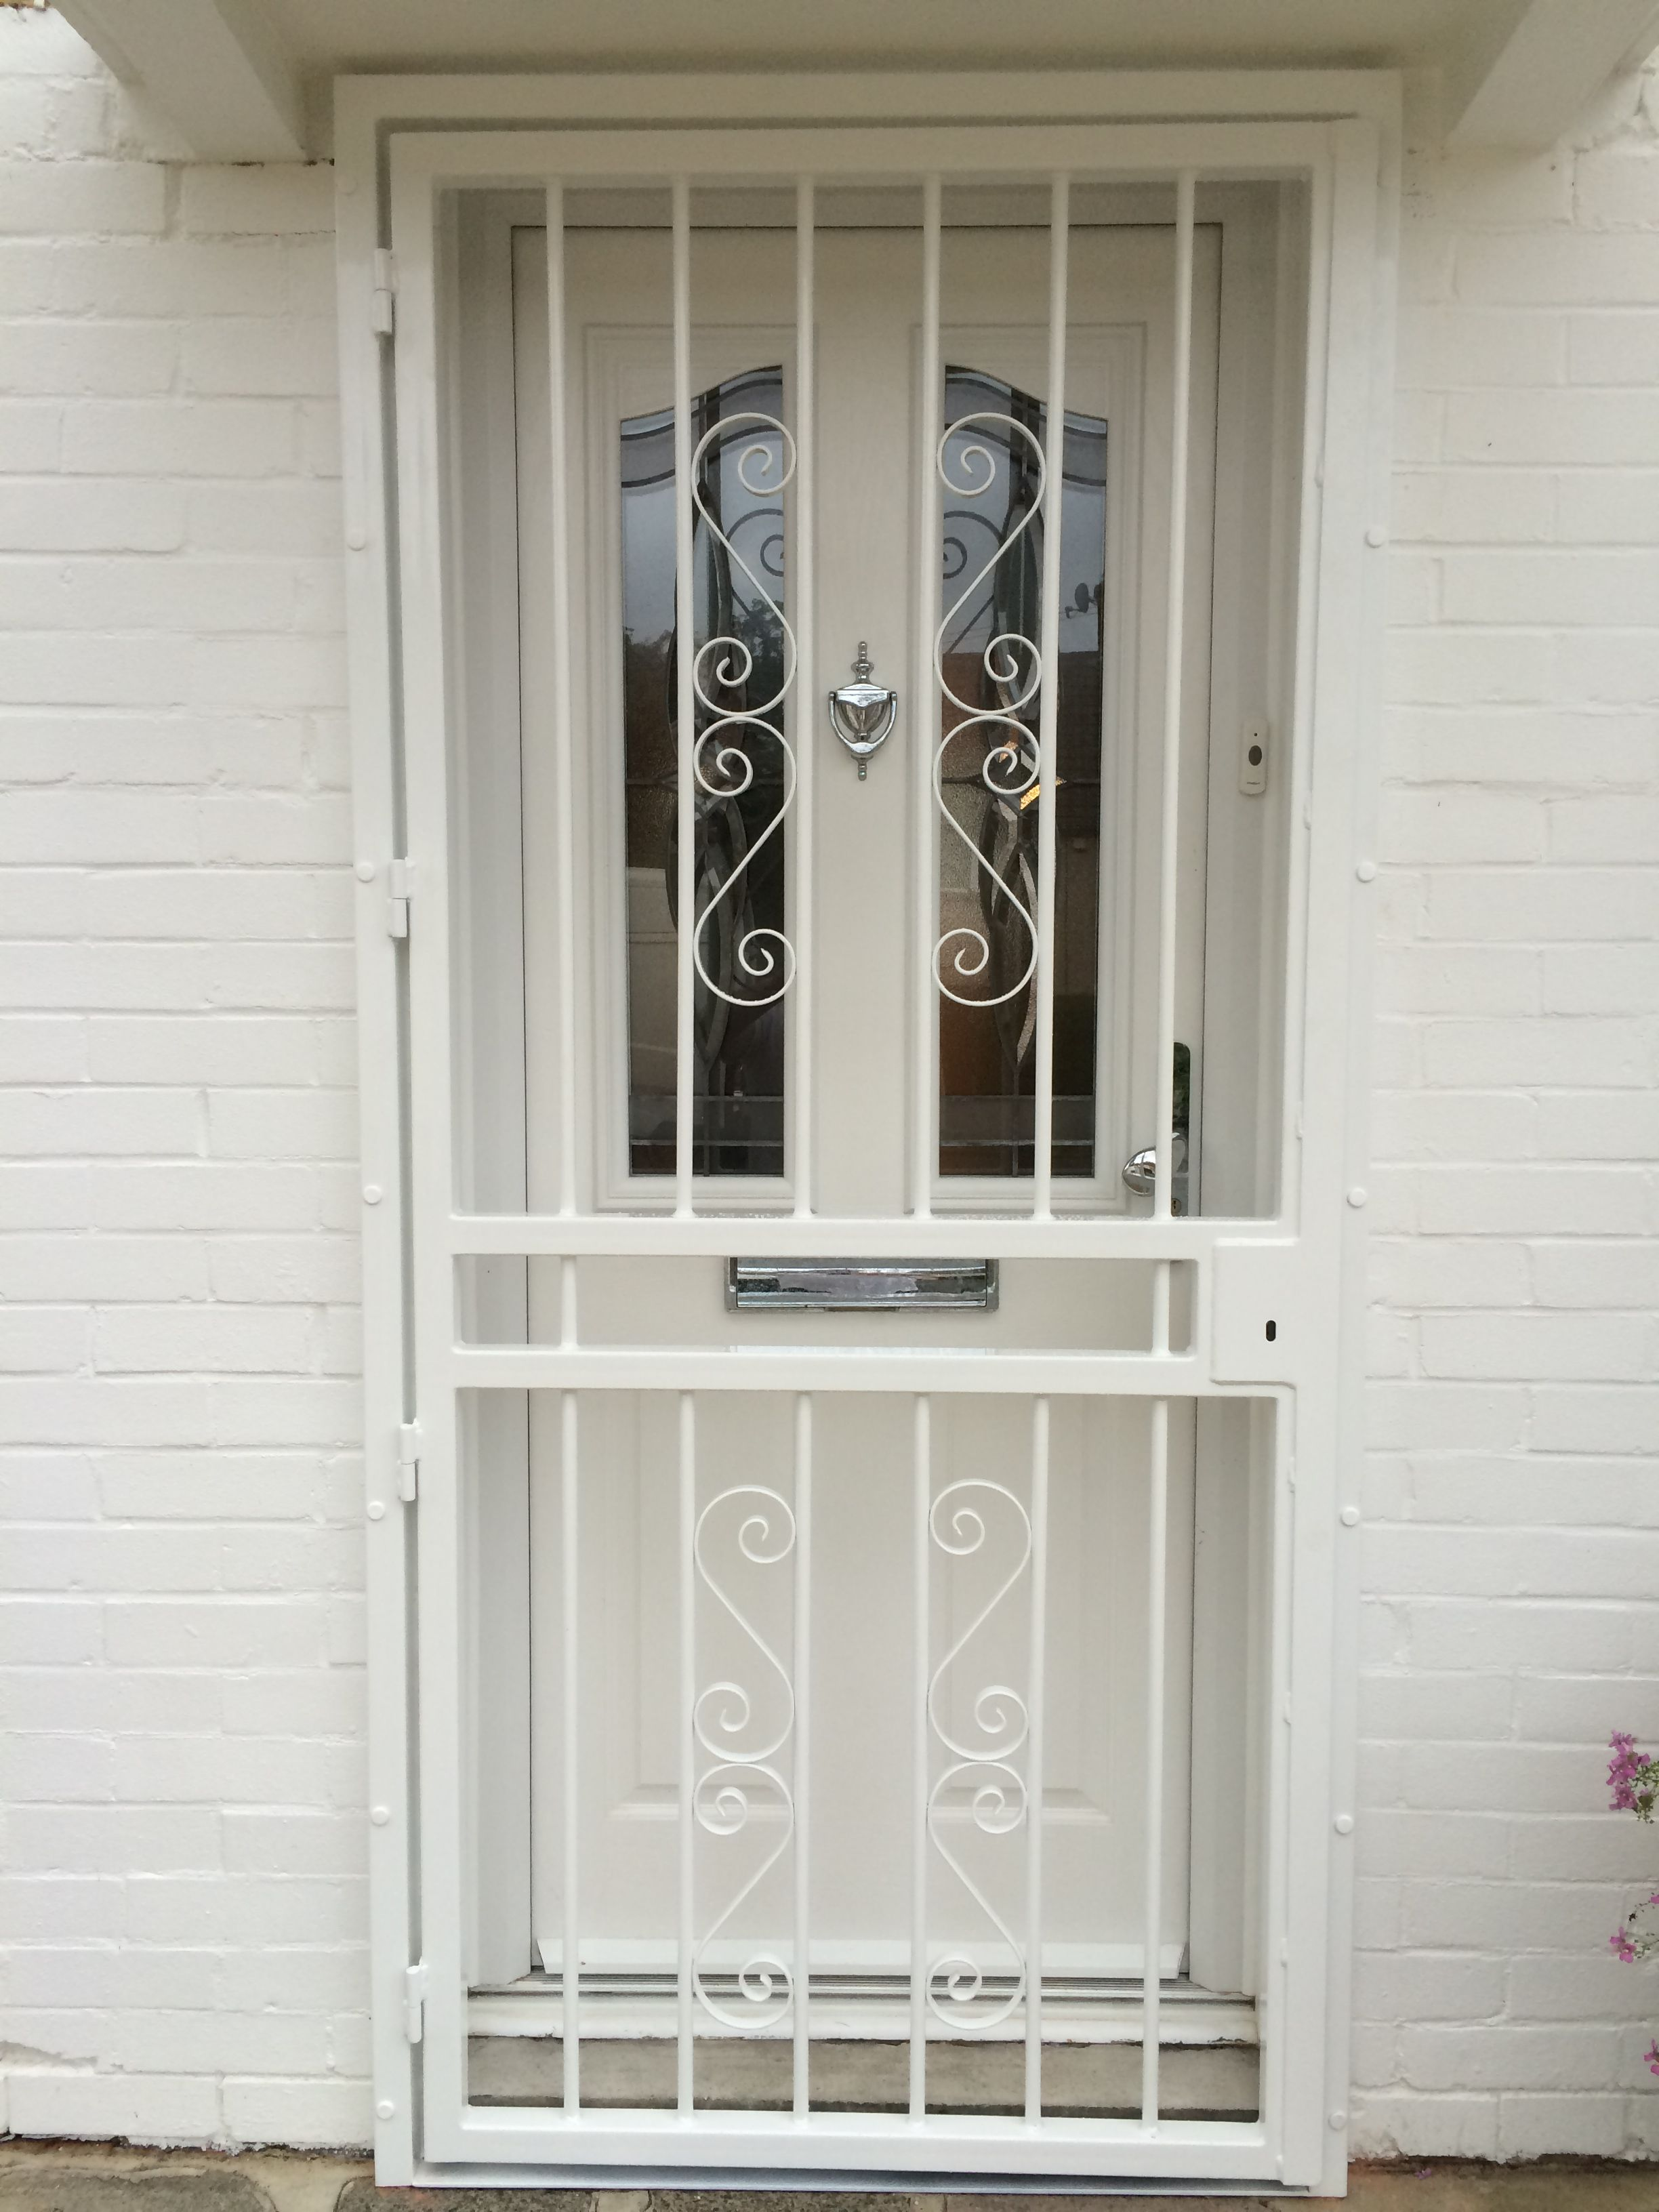 Rsg3000 Security Door Gate Fitted To The Main Door Of A Private